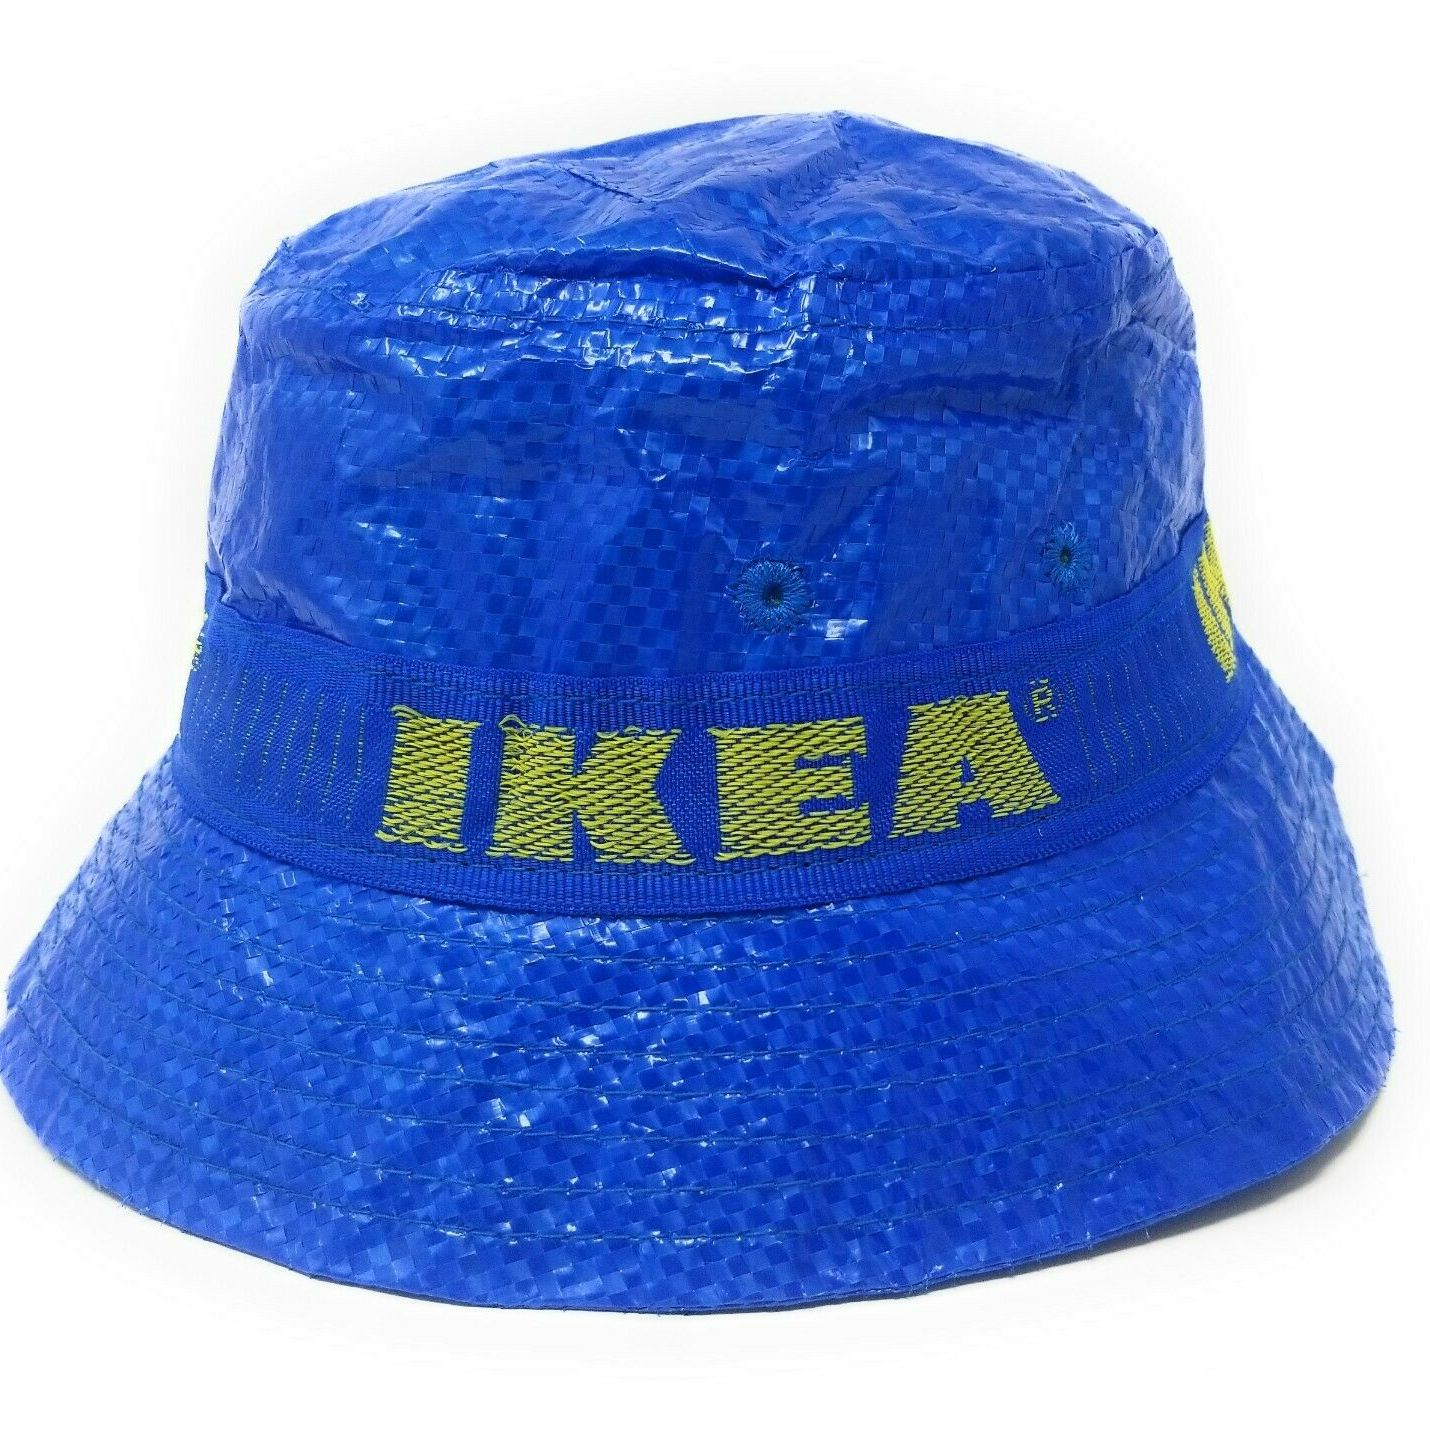 Ikea Shopping Bag Bucket Hats Are Now Sold In Stores